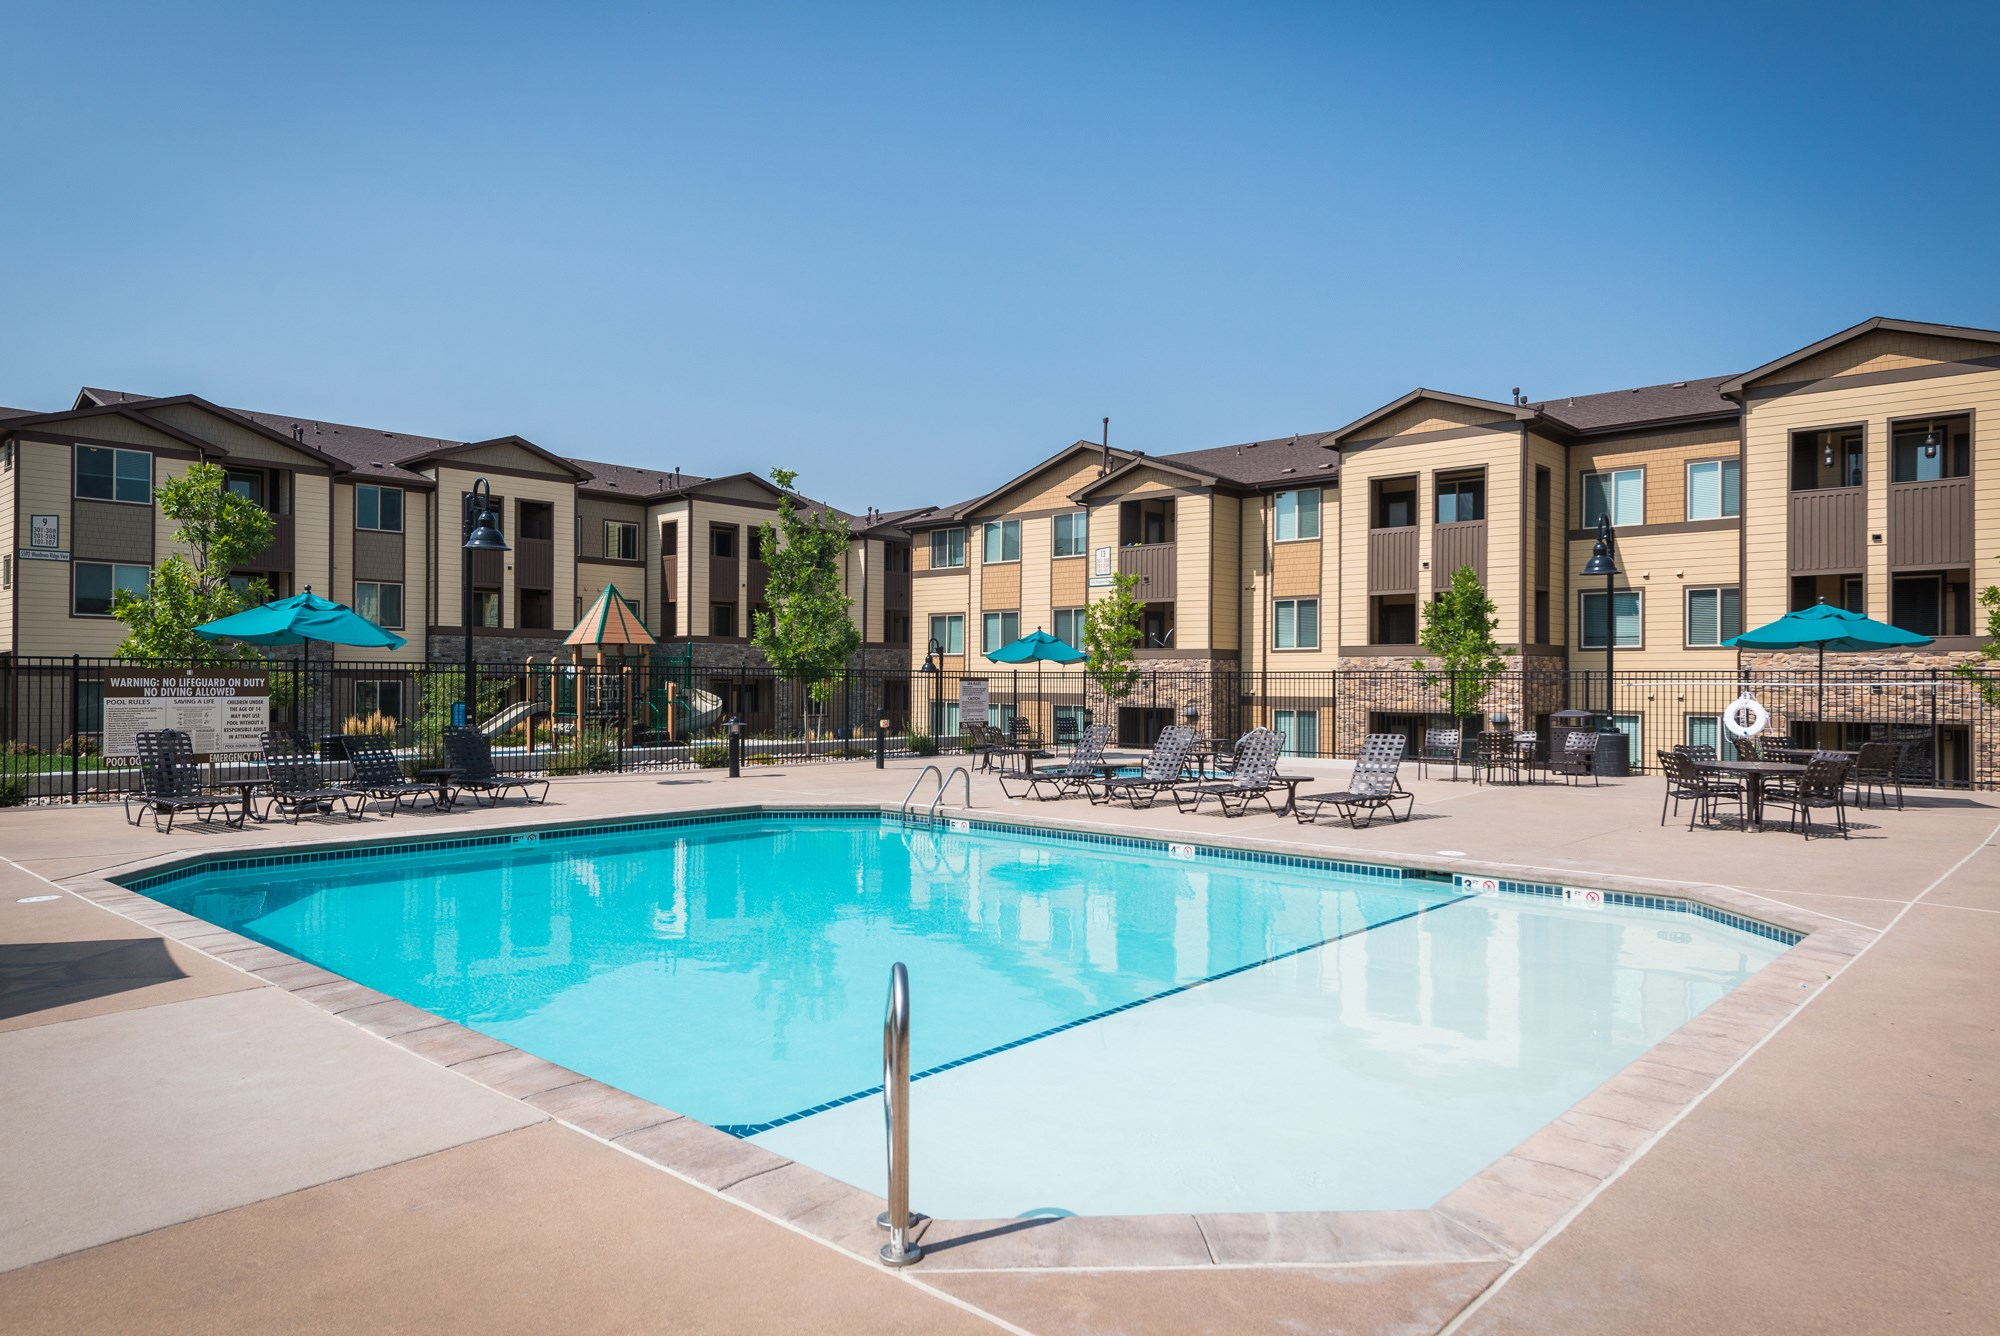 Swimming Pool at Estate at Woodmen Ridge Apartments in Colorado Springs, CO